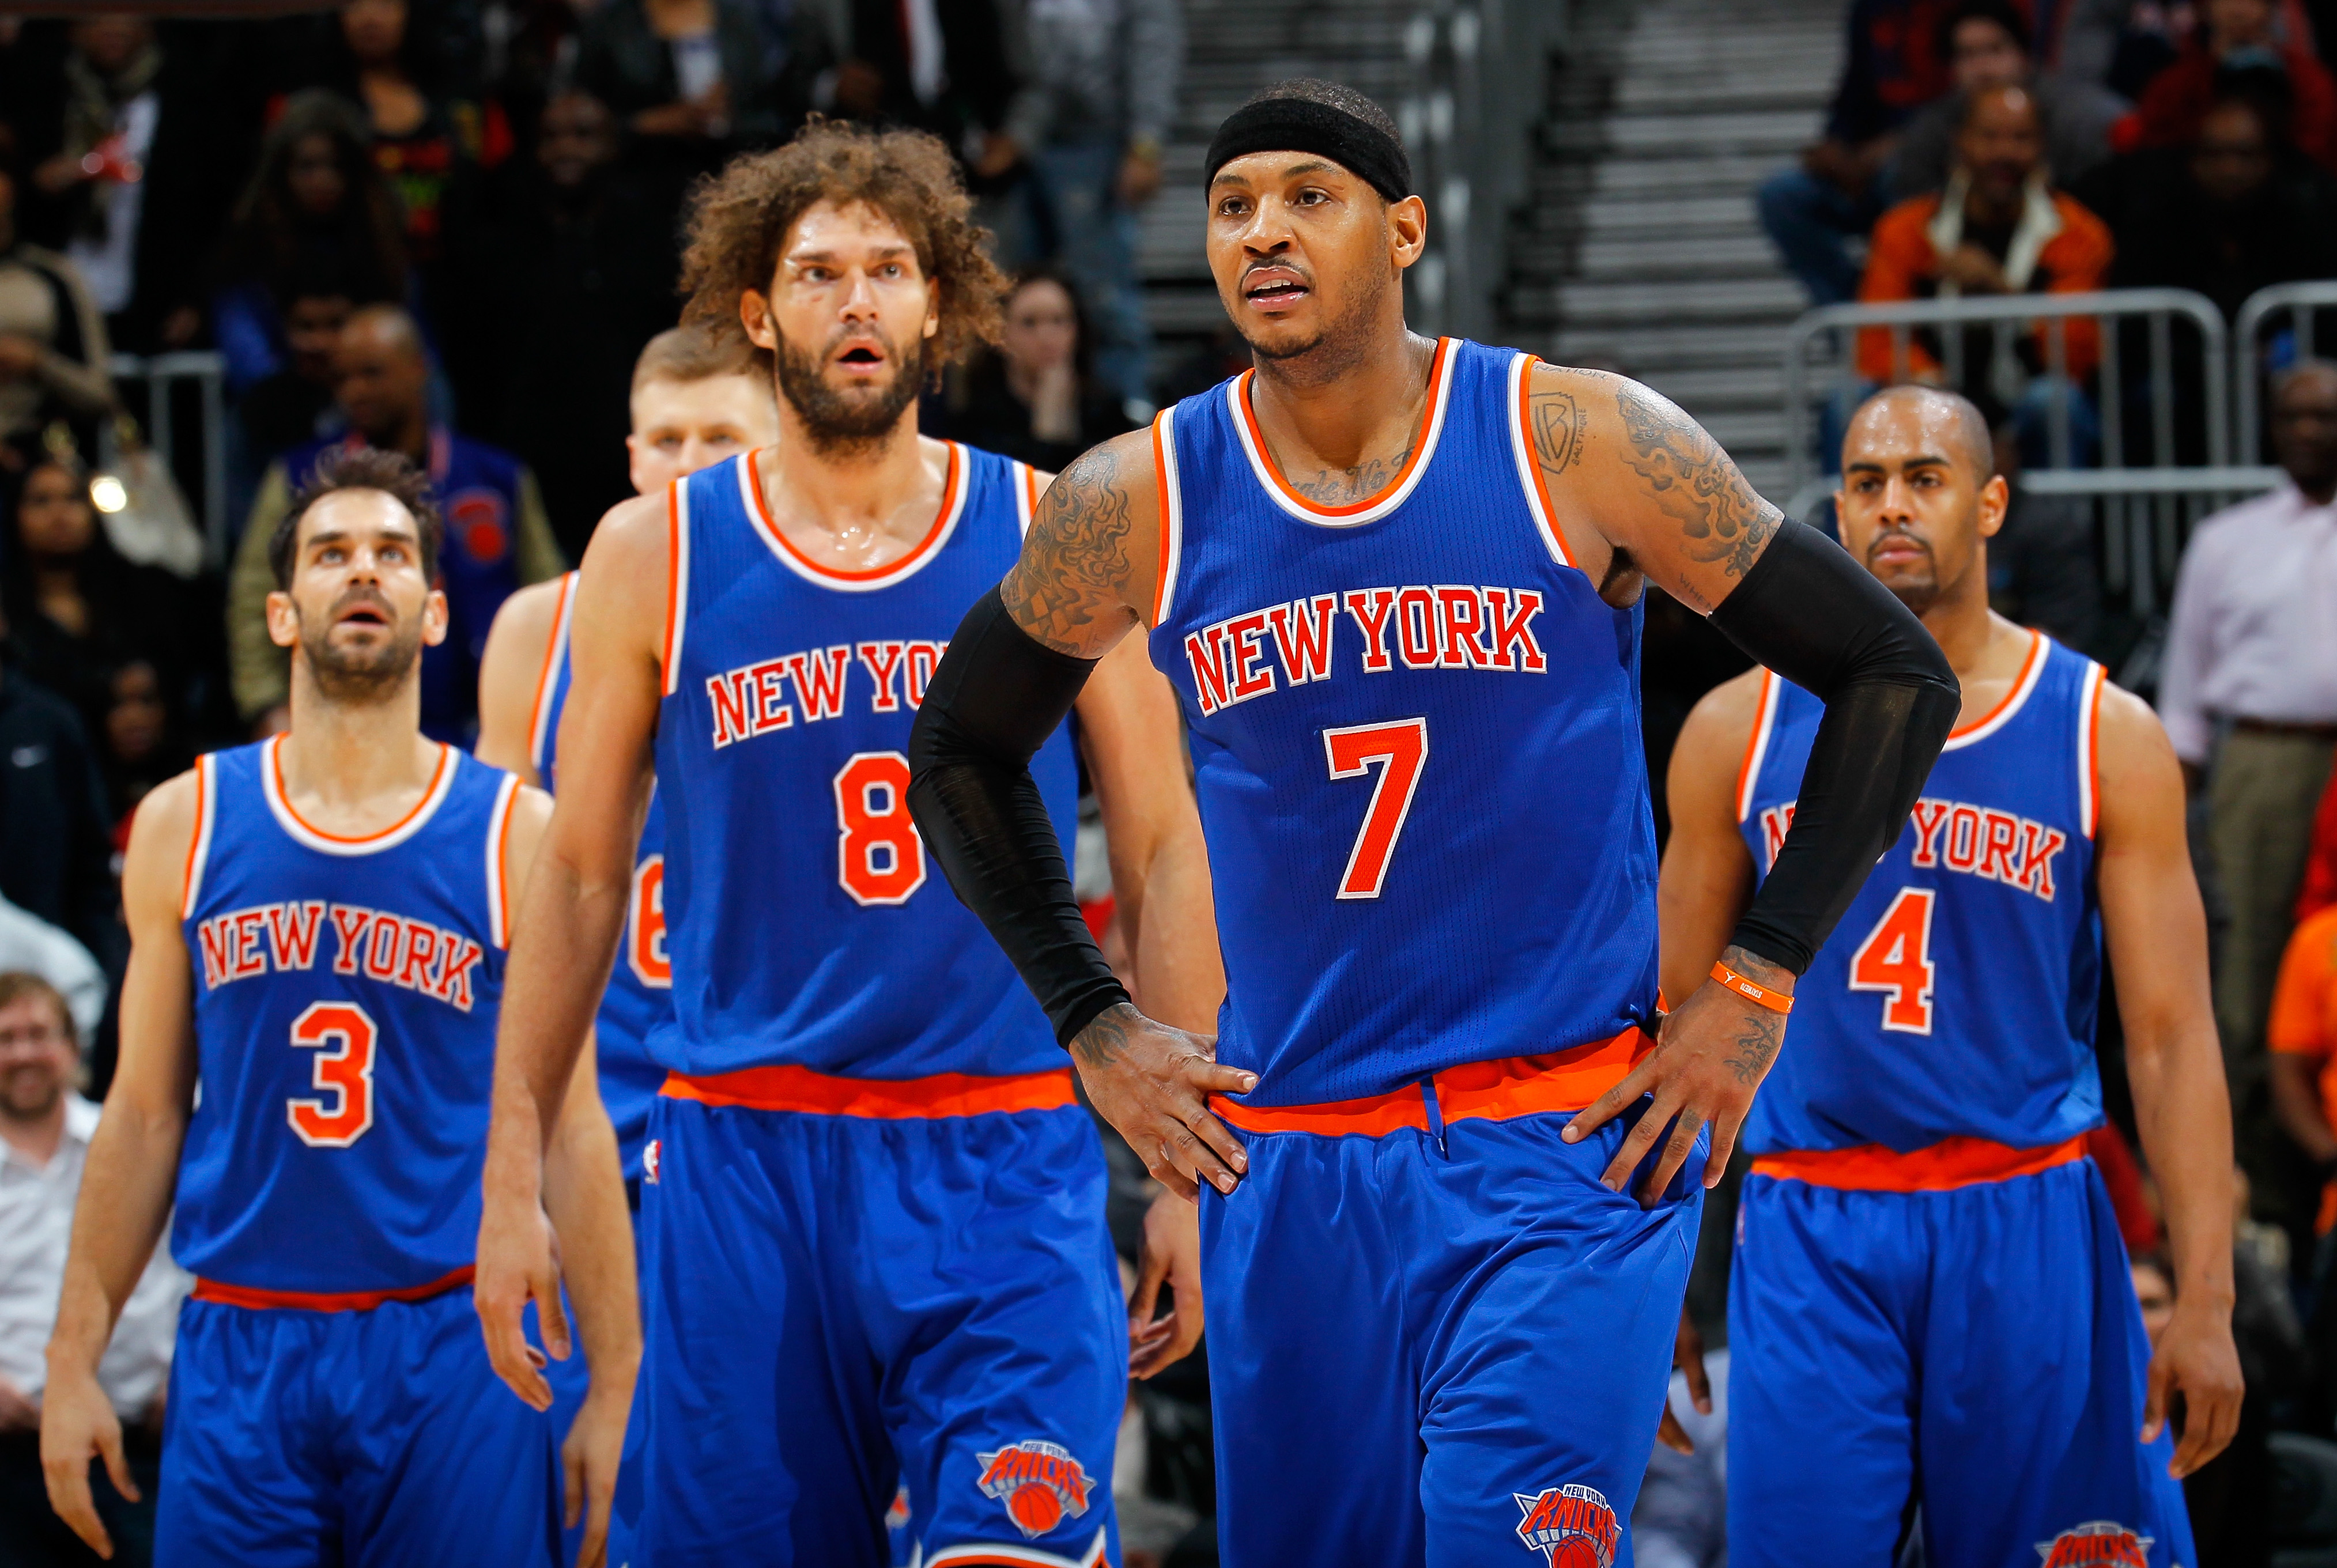 ATLANTA, GA - JANUARY 05:  Carmelo Anthony #7 of the New York Knicks reacts in the final seconds of their 107-101 win over the Atlanta Hawks at Philips Arena on January 5, 2016 in Atlanta, Georgia.  NOTE TO USER User expressly acknowledges and agrees that